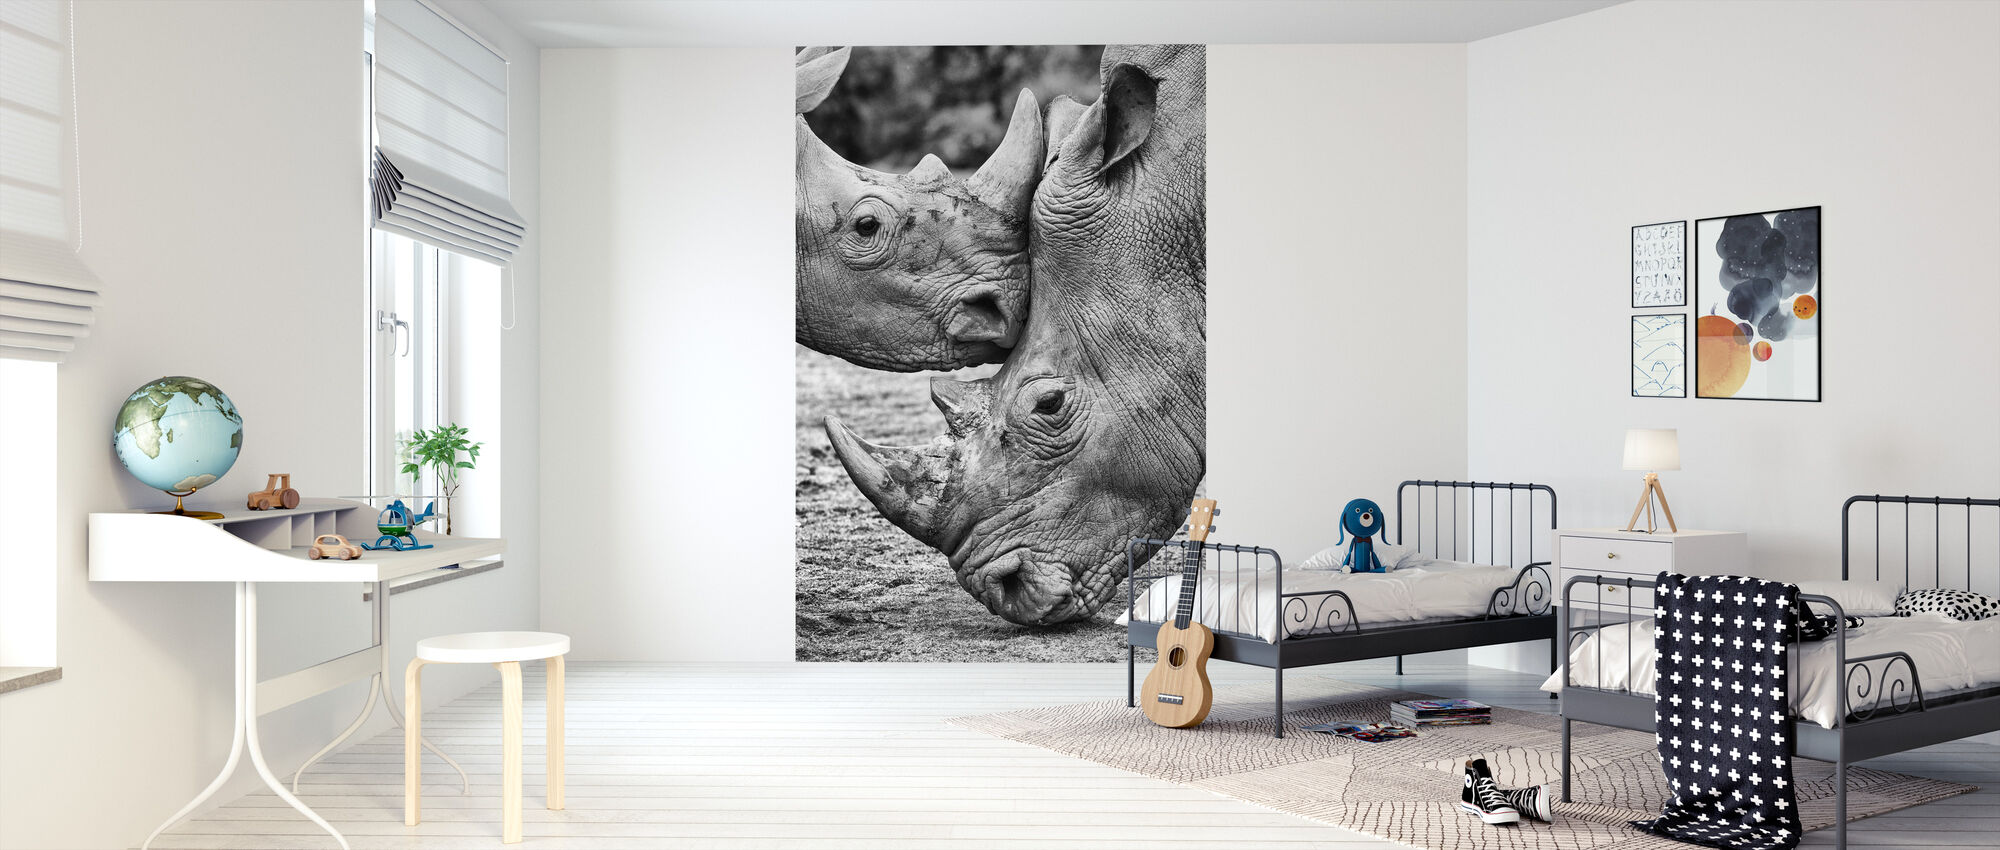 Face to Face - Wallpaper - Kids Room